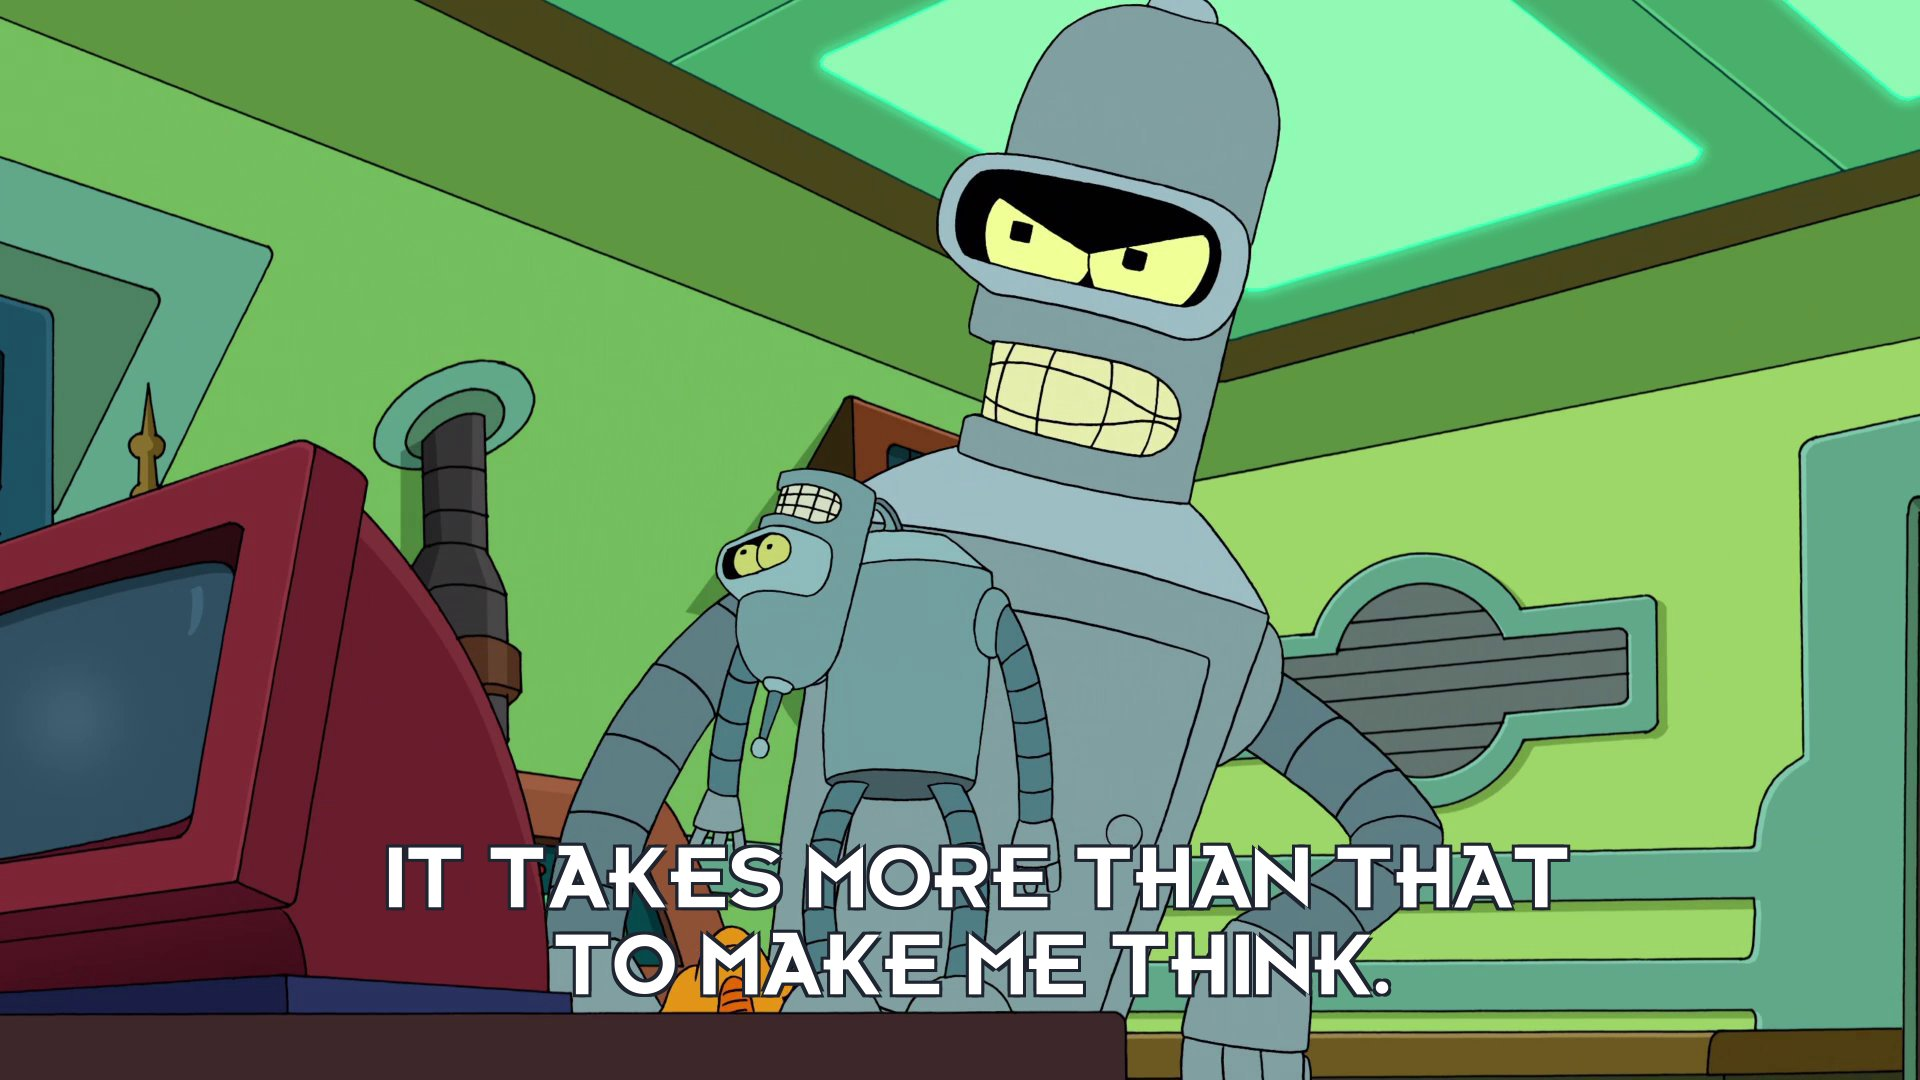 Bender Bending Rodriguez: It takes more than that to make me think.